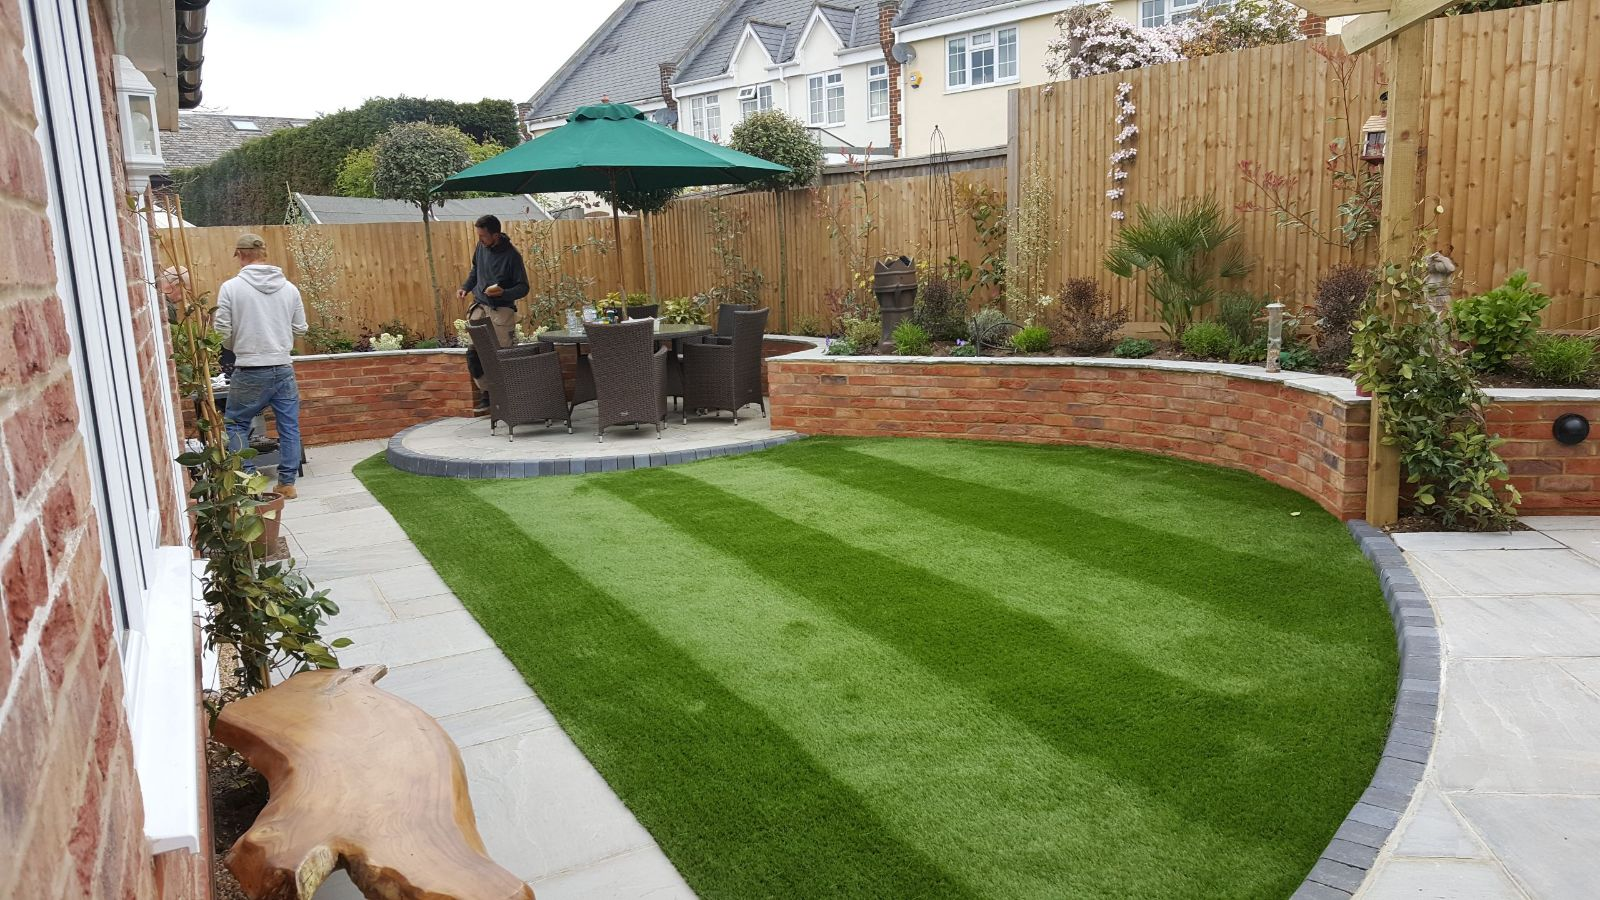 Garden with artificial grass and round patio